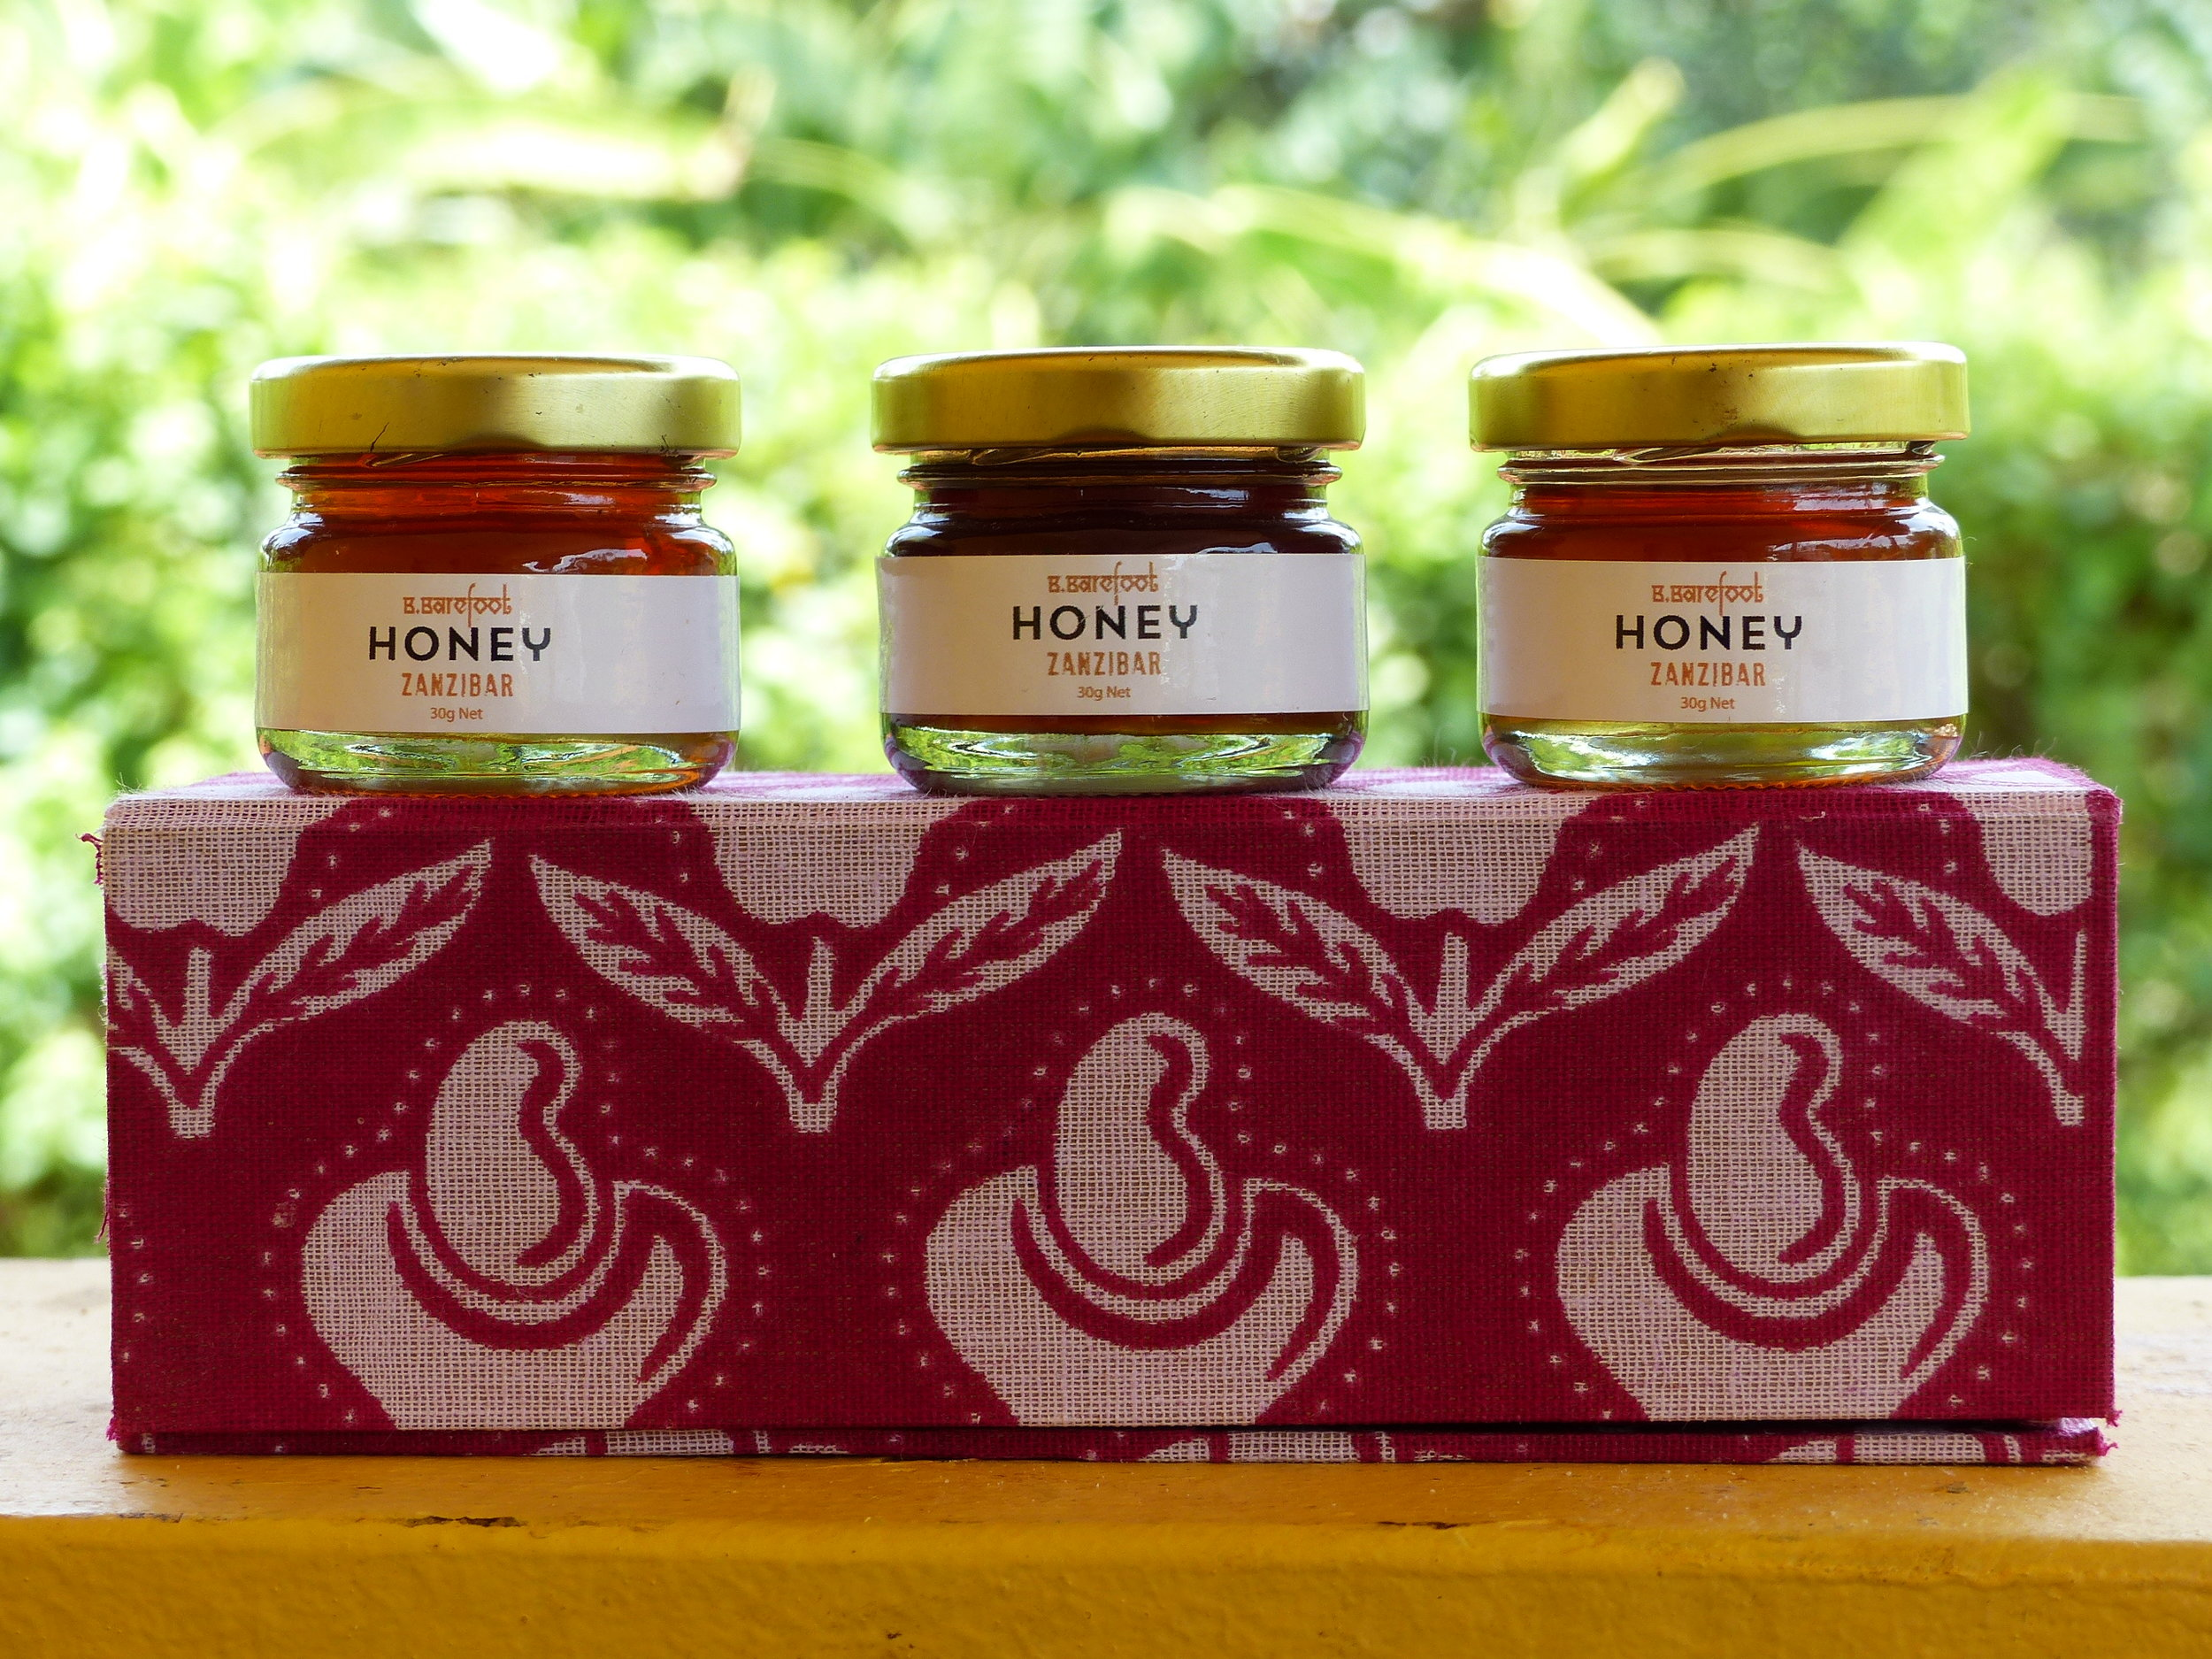 B.BAREFOOT HONEY GIFT BOX 3*30g HONEY JARS